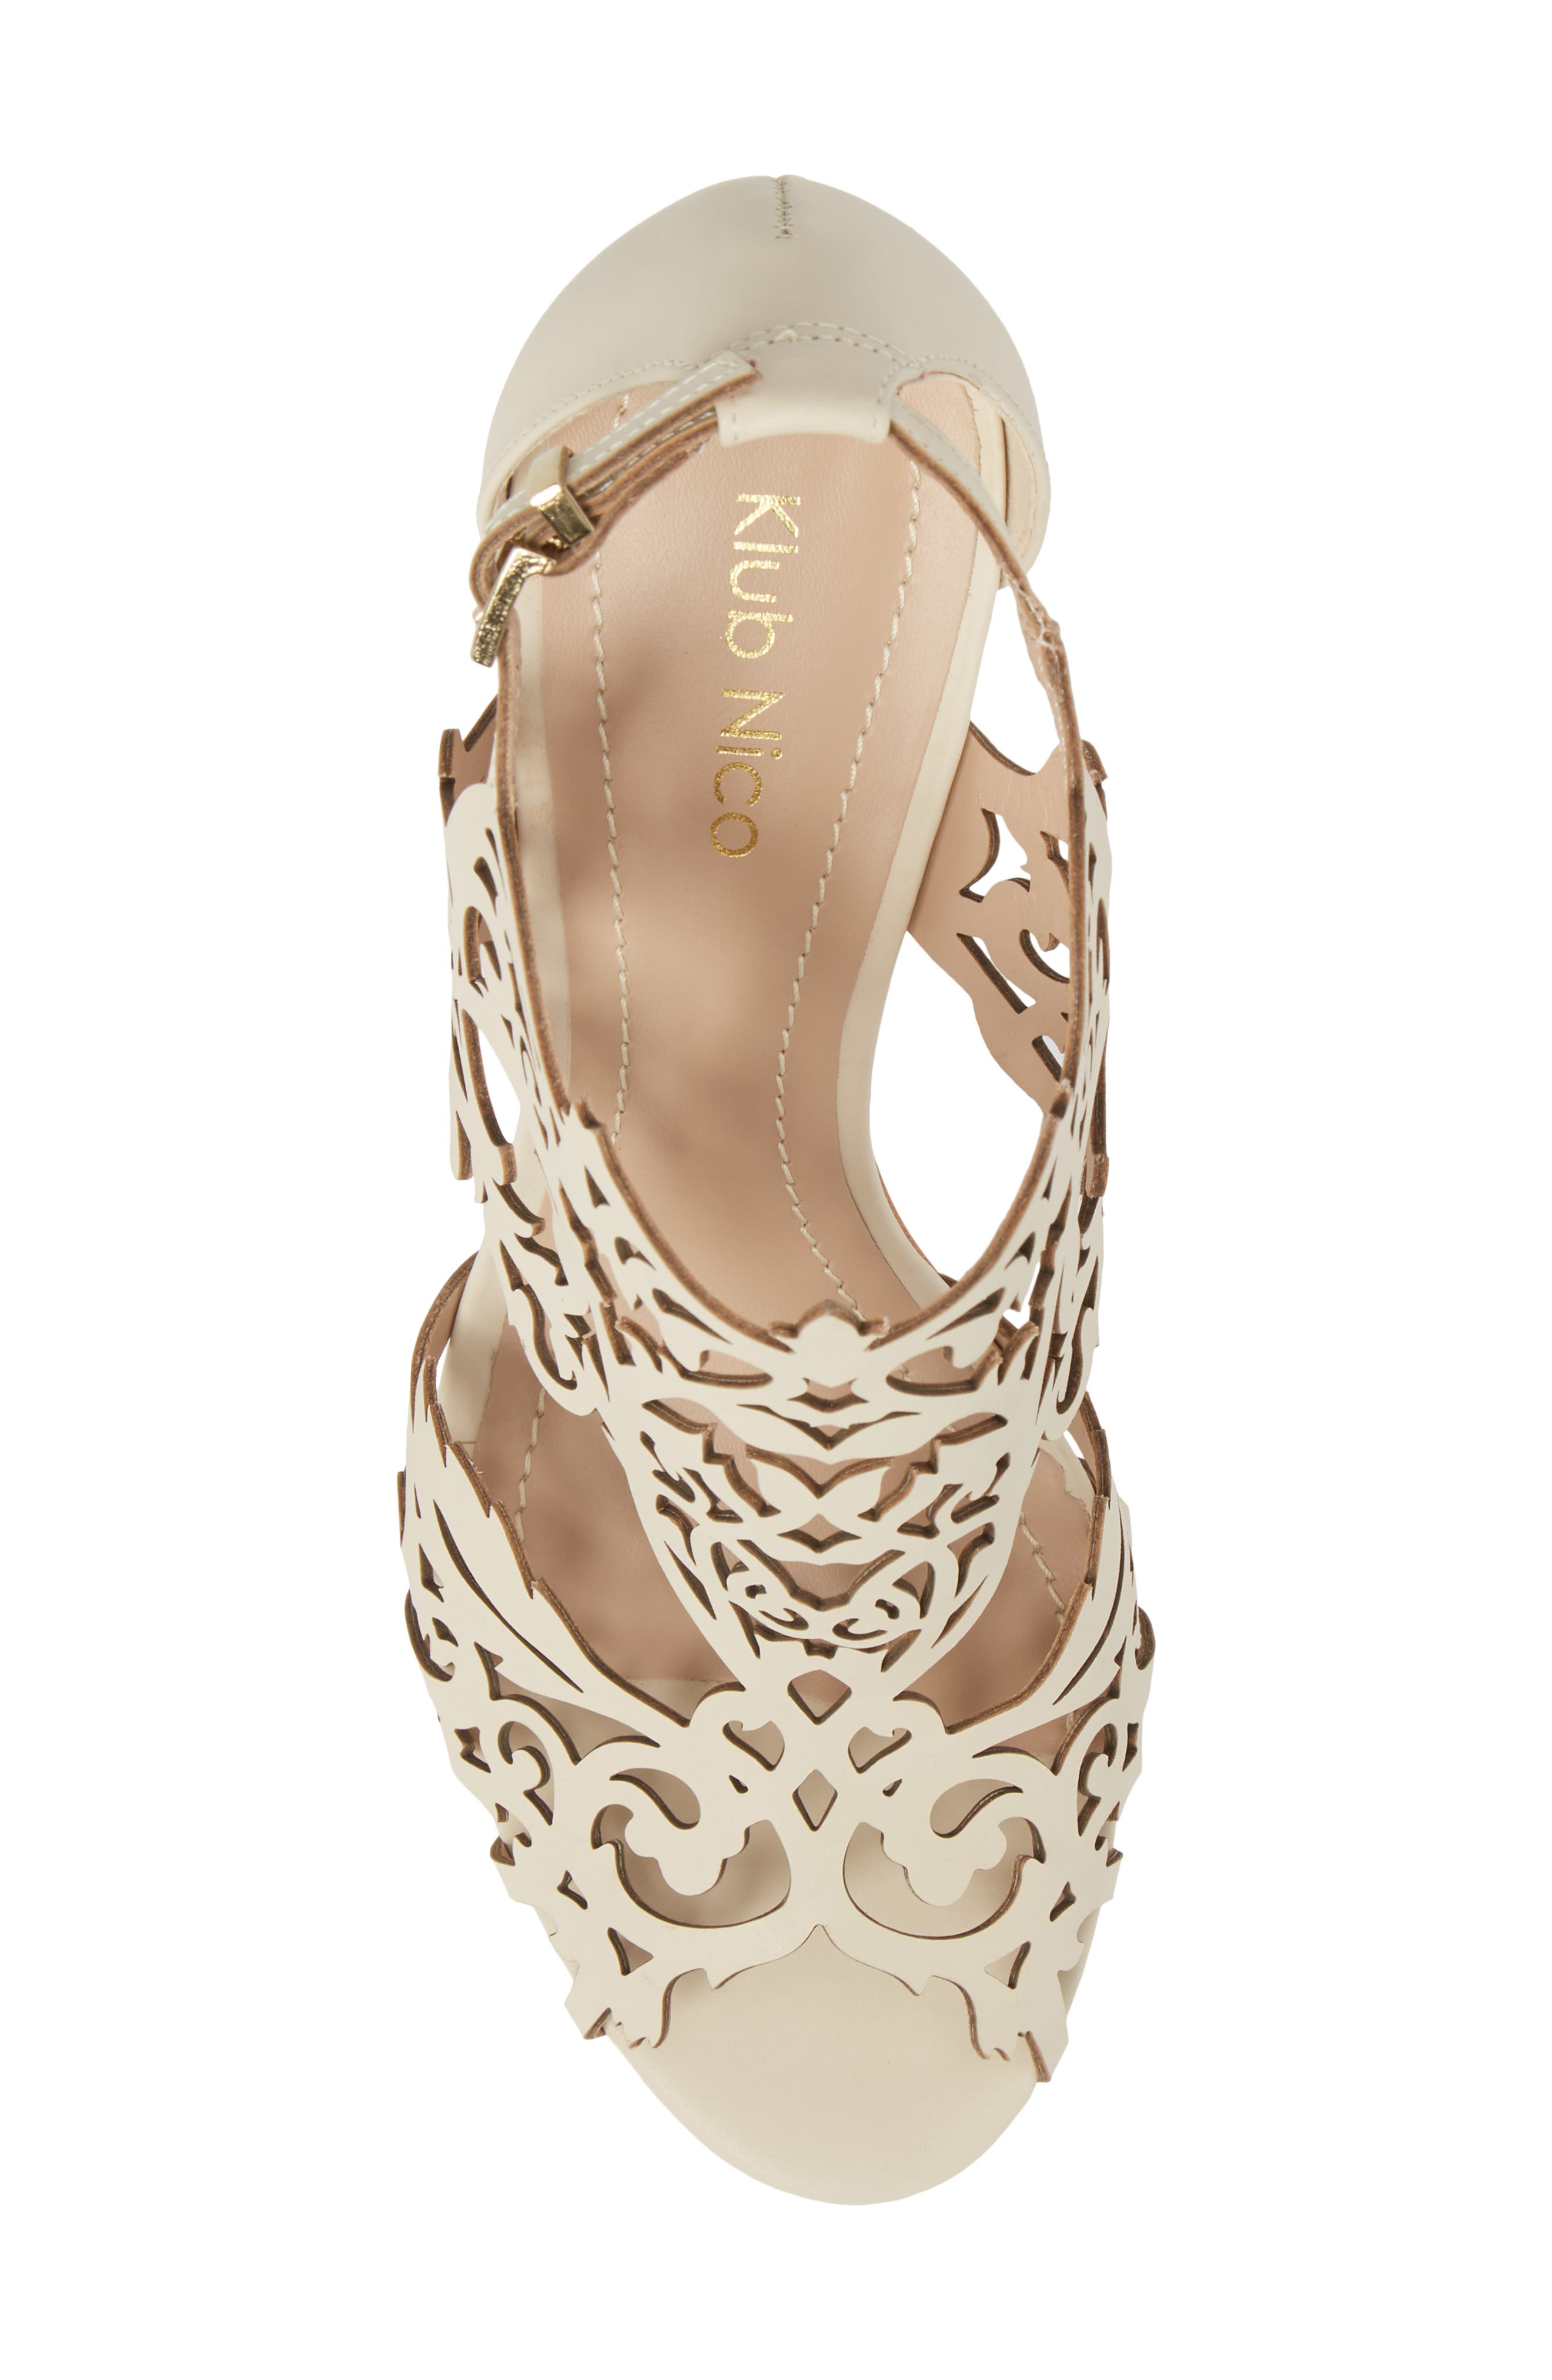 Marcela 3 Laser Cutout Sandal,                             Alternate thumbnail 5, color,                             Ivory Leather